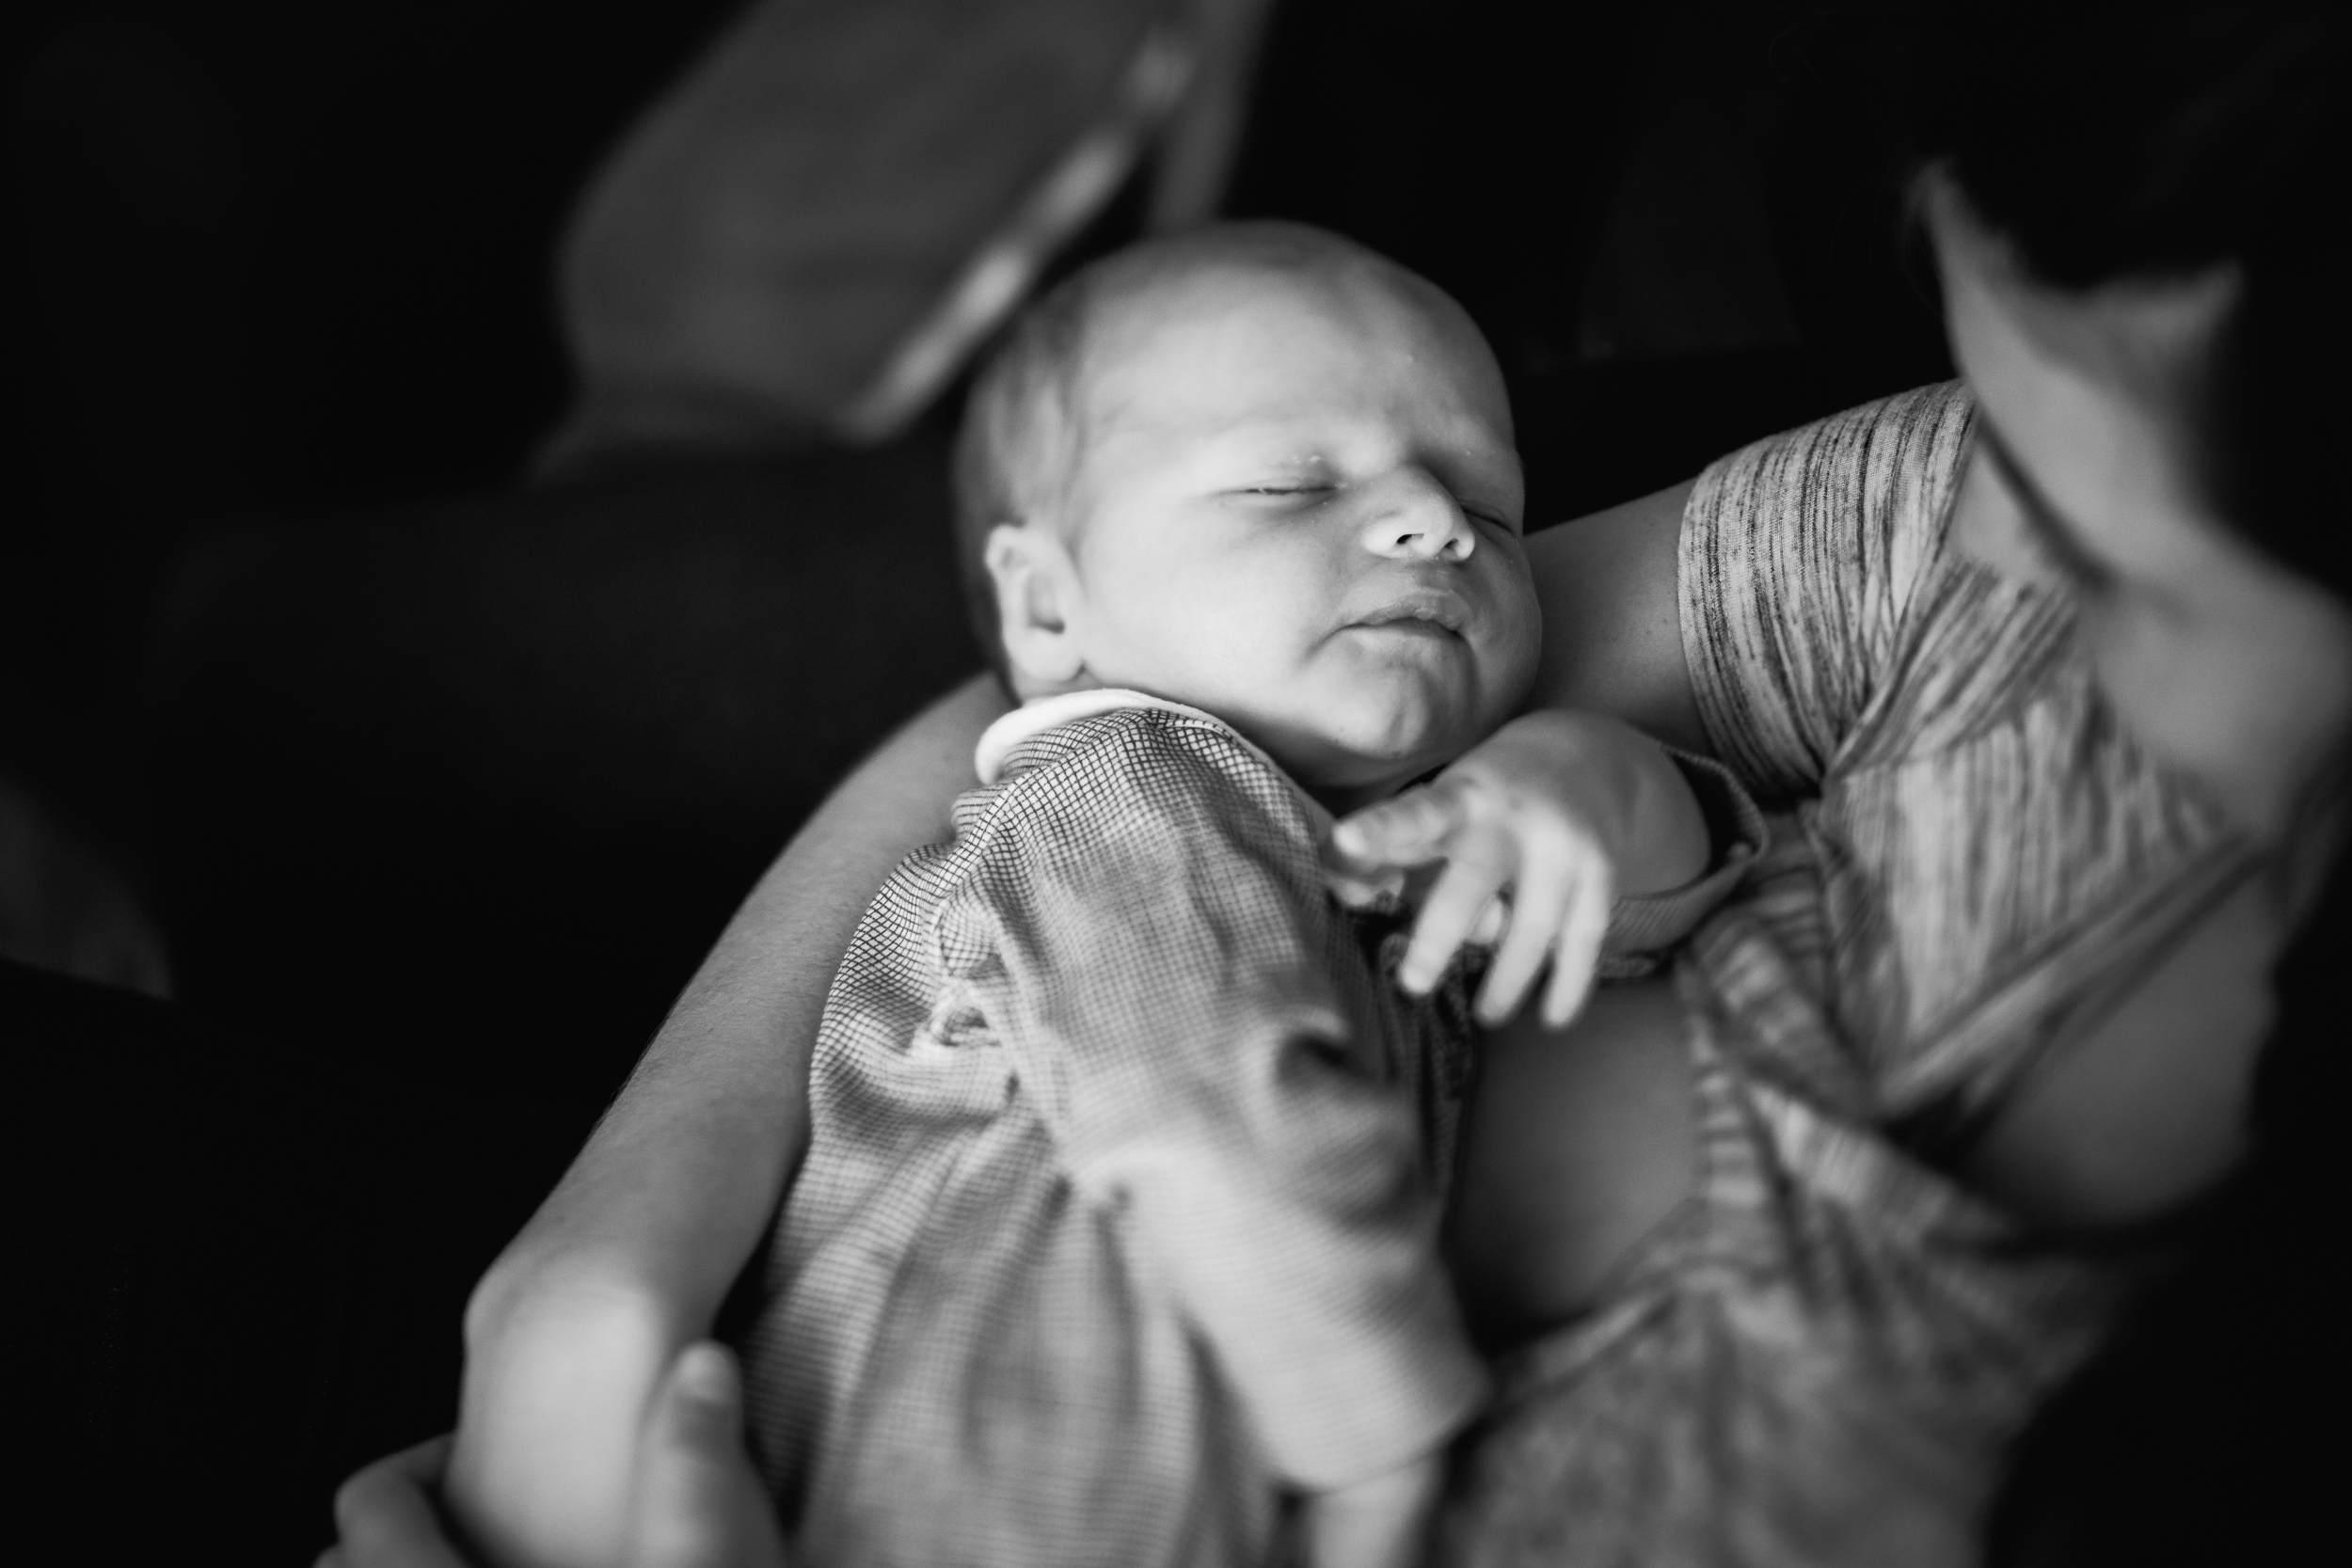 Freelensed photo of baby in mother's arms